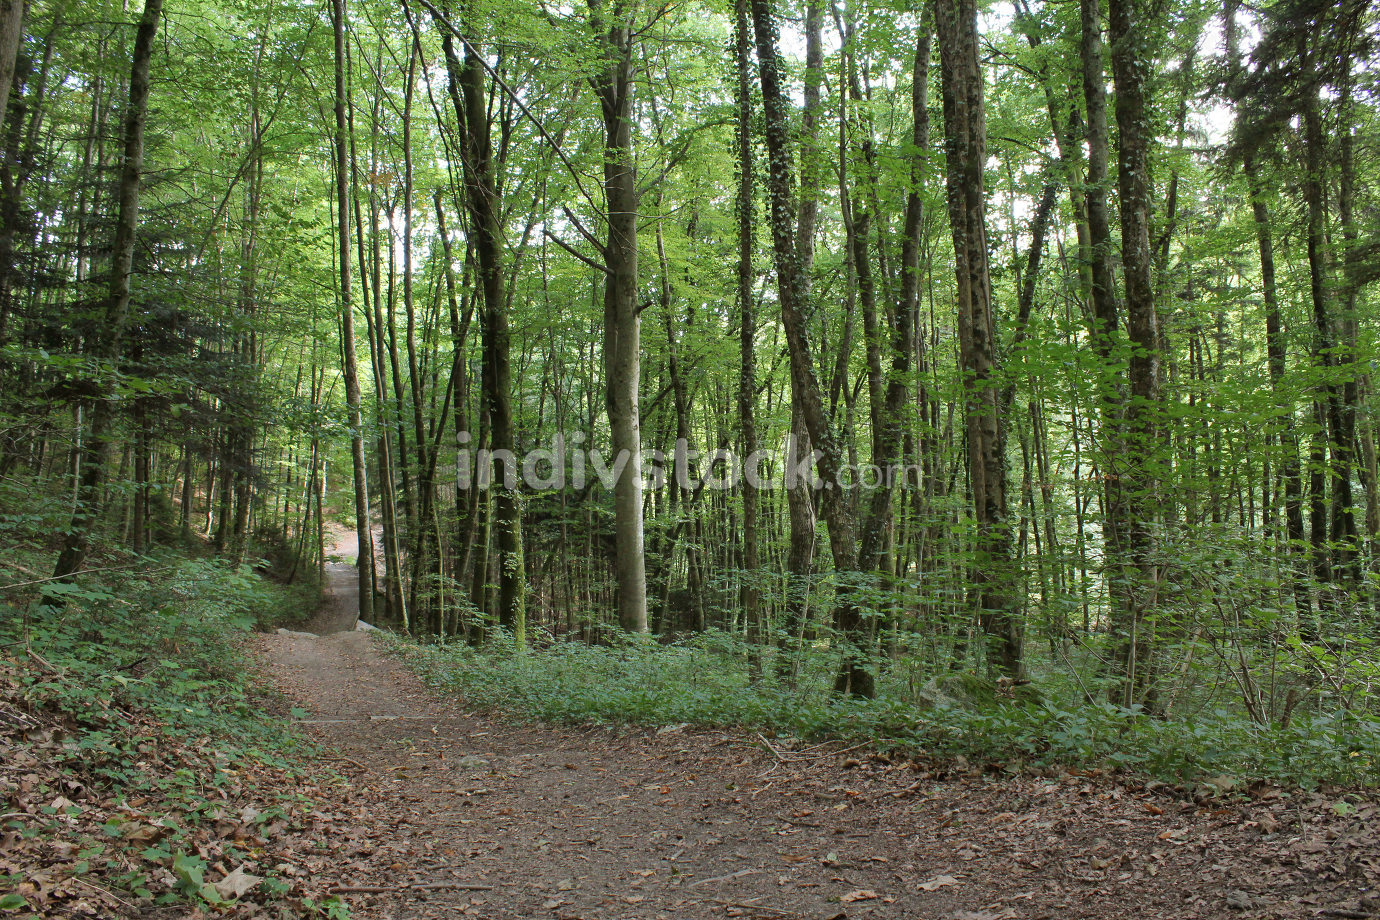 Pathway in a forest